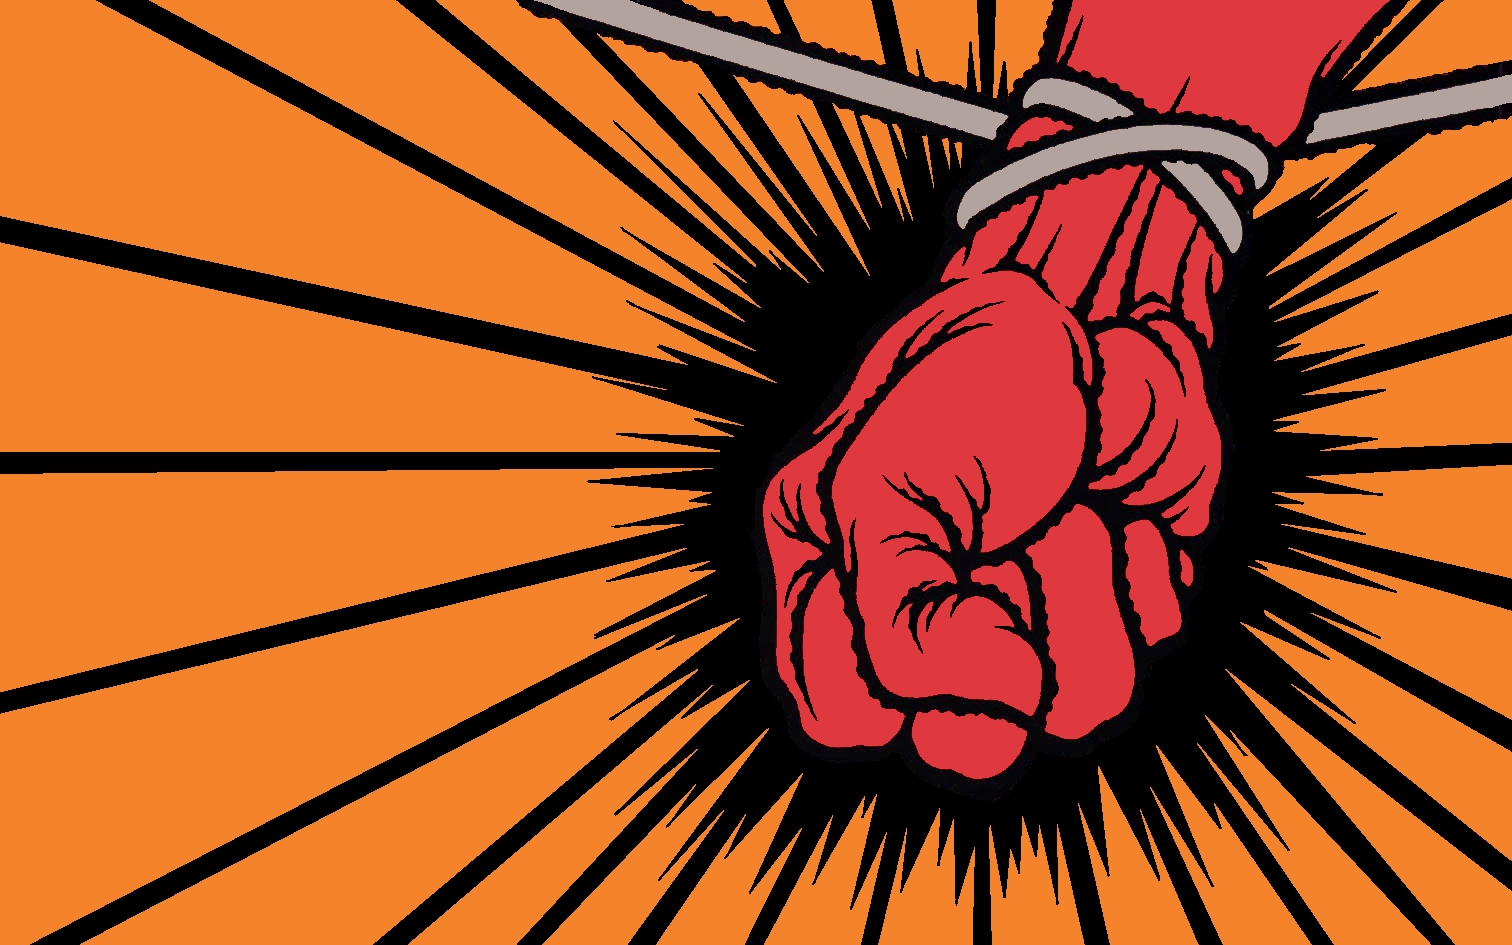 St. Anger Cover Wallpaper by ipunchheads